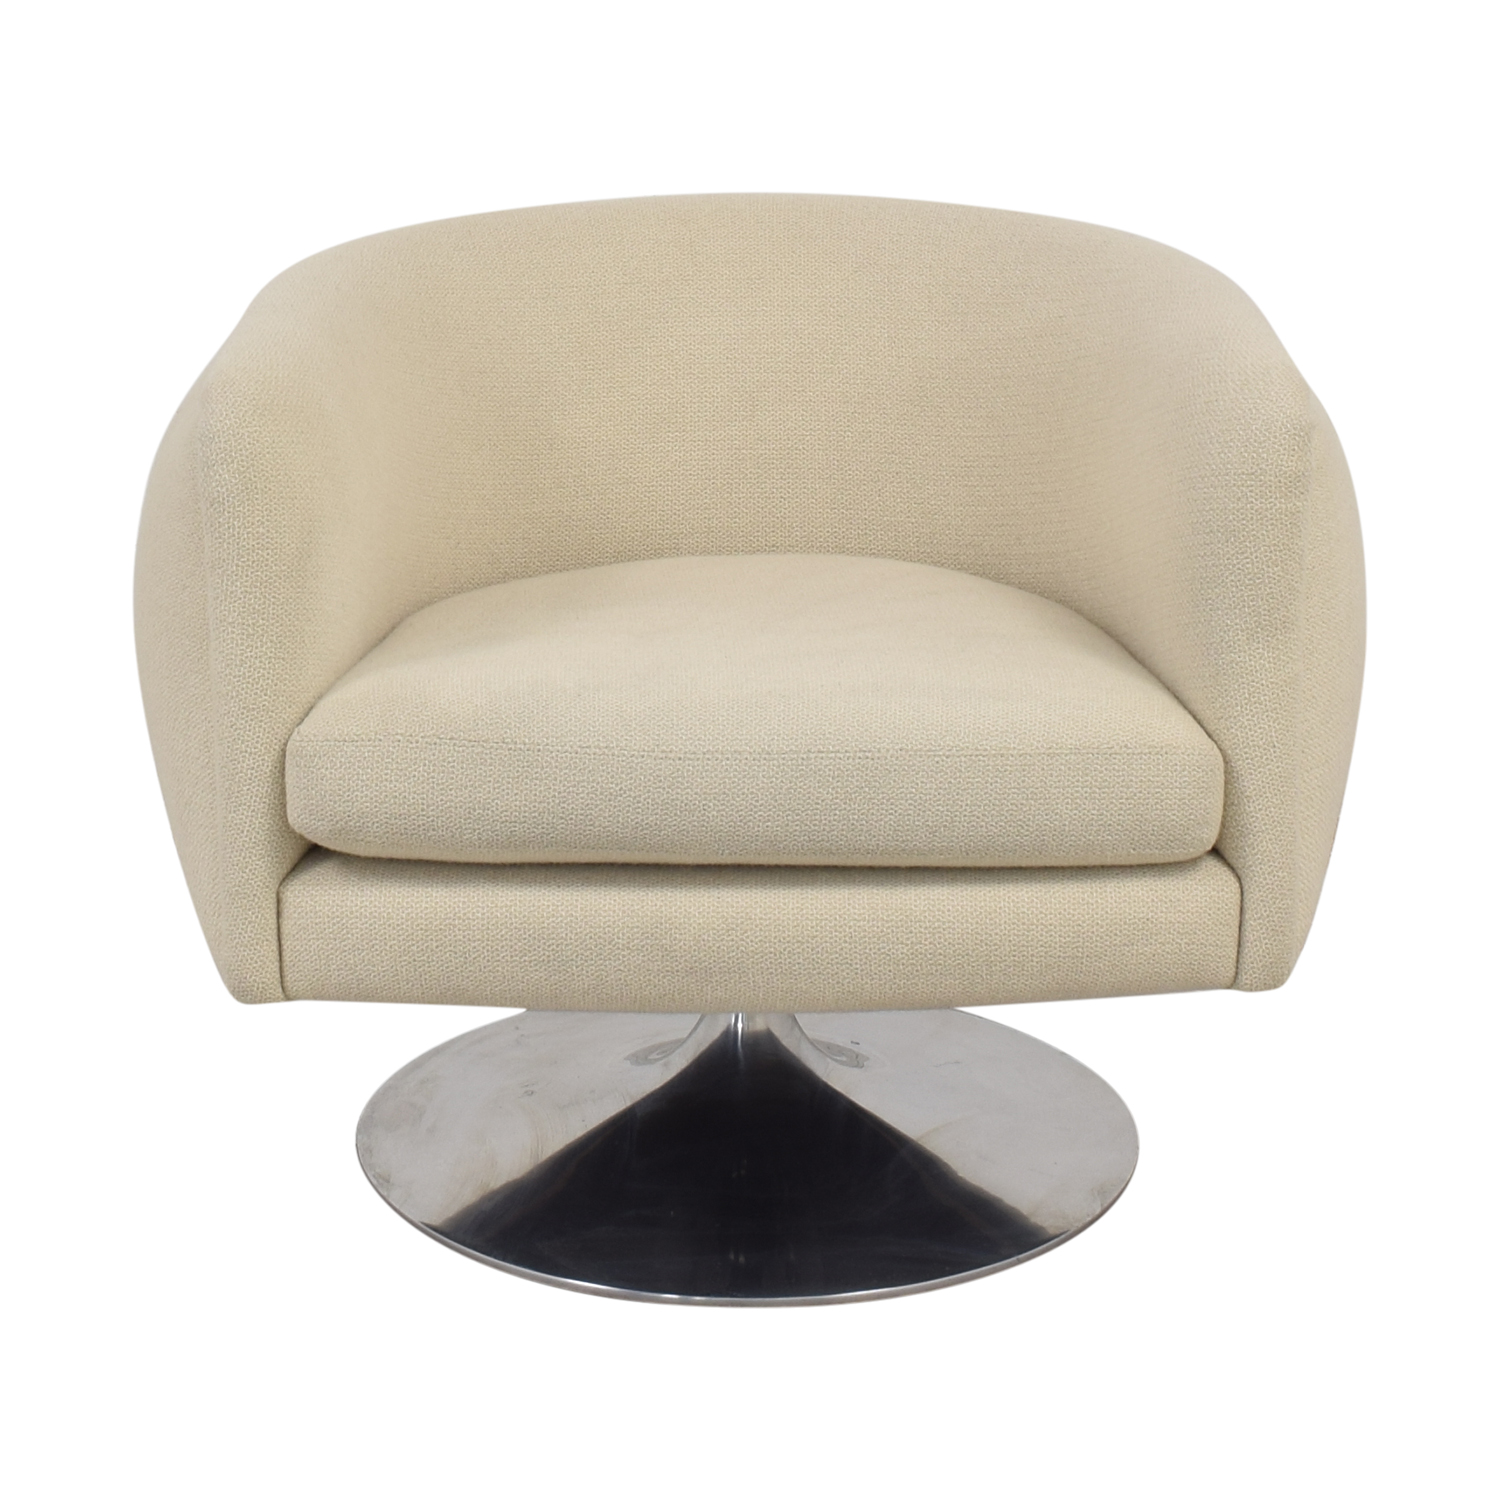 Knoll Knoll D'Urso Swivel Chair second hand